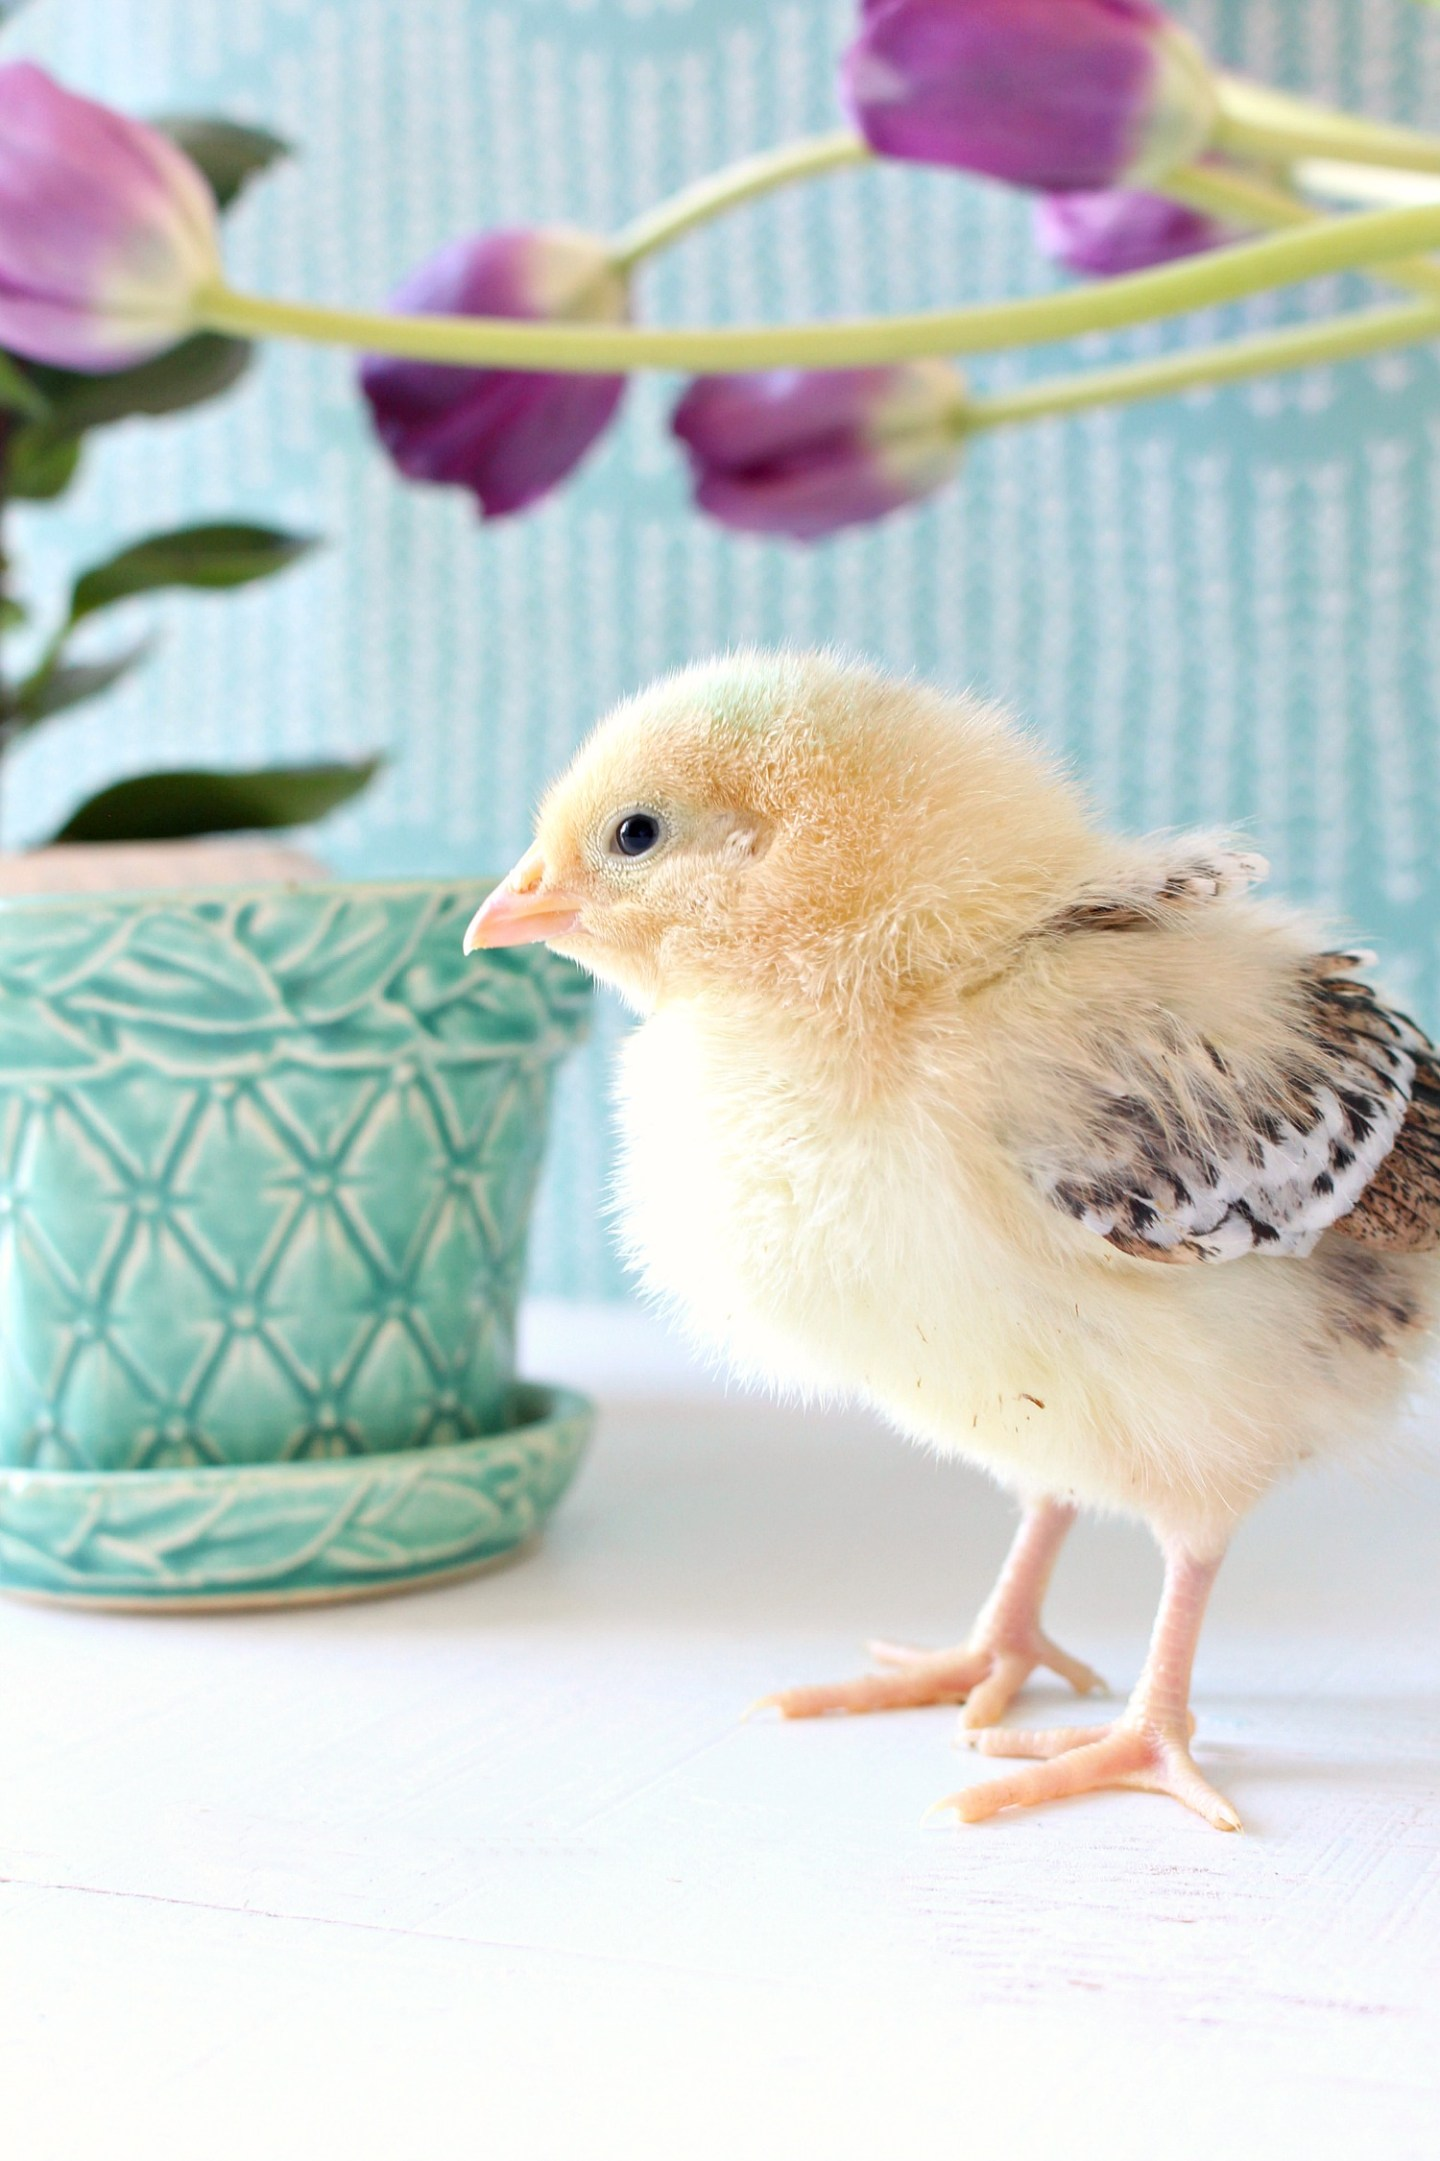 Sweet Yellow Chick Posing for Spring Chick Photos with McCoy Pottery